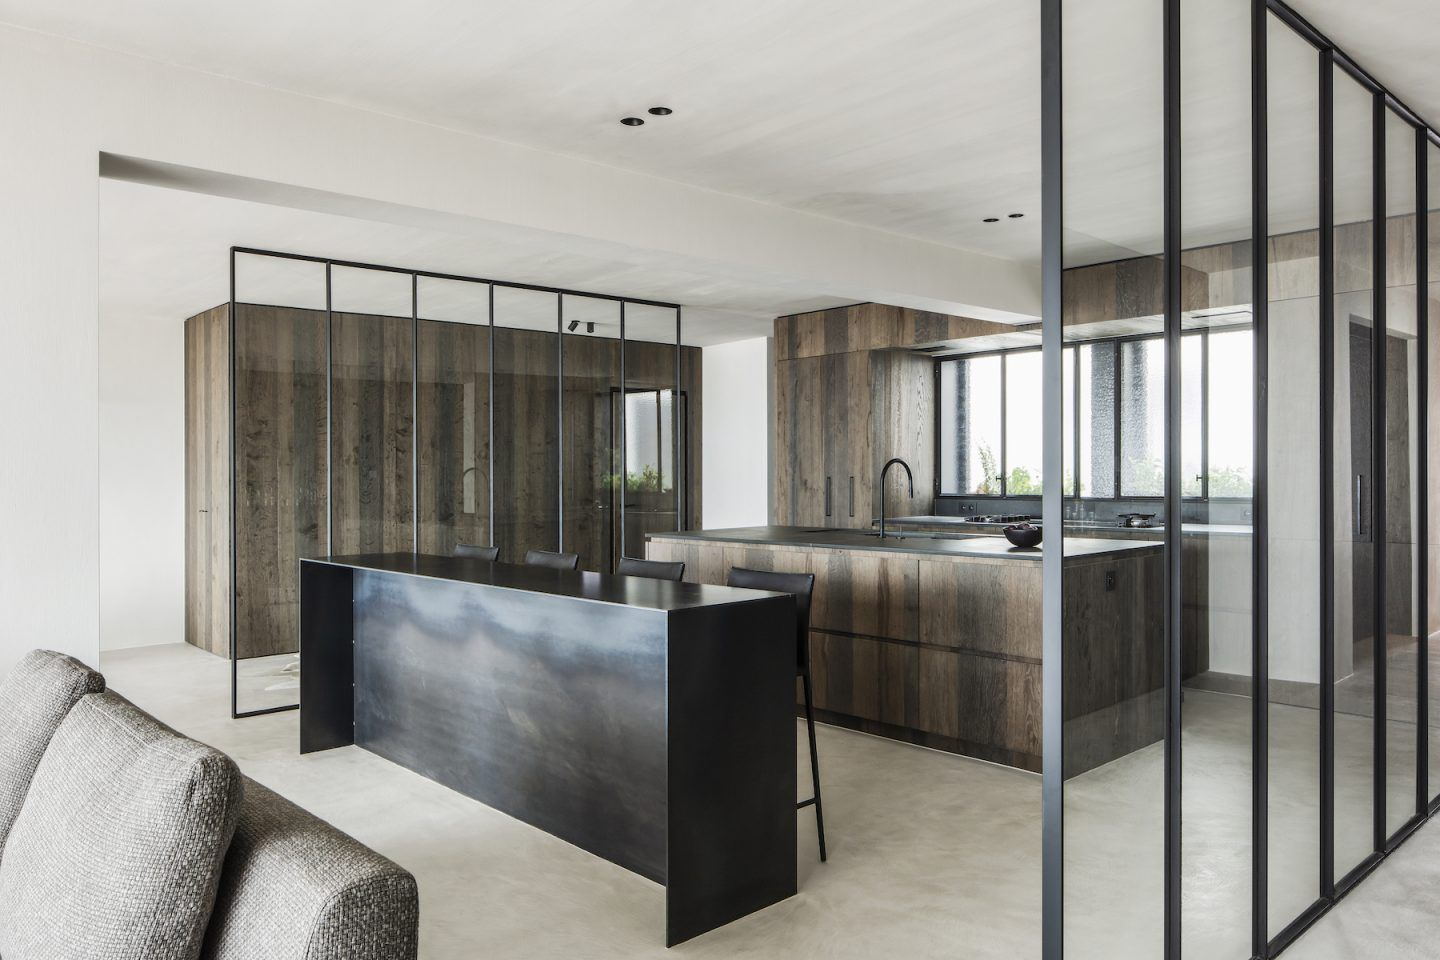 IGNANT-Architecture-Arjaan-De-Feyter-Penthouse-Zoute-02